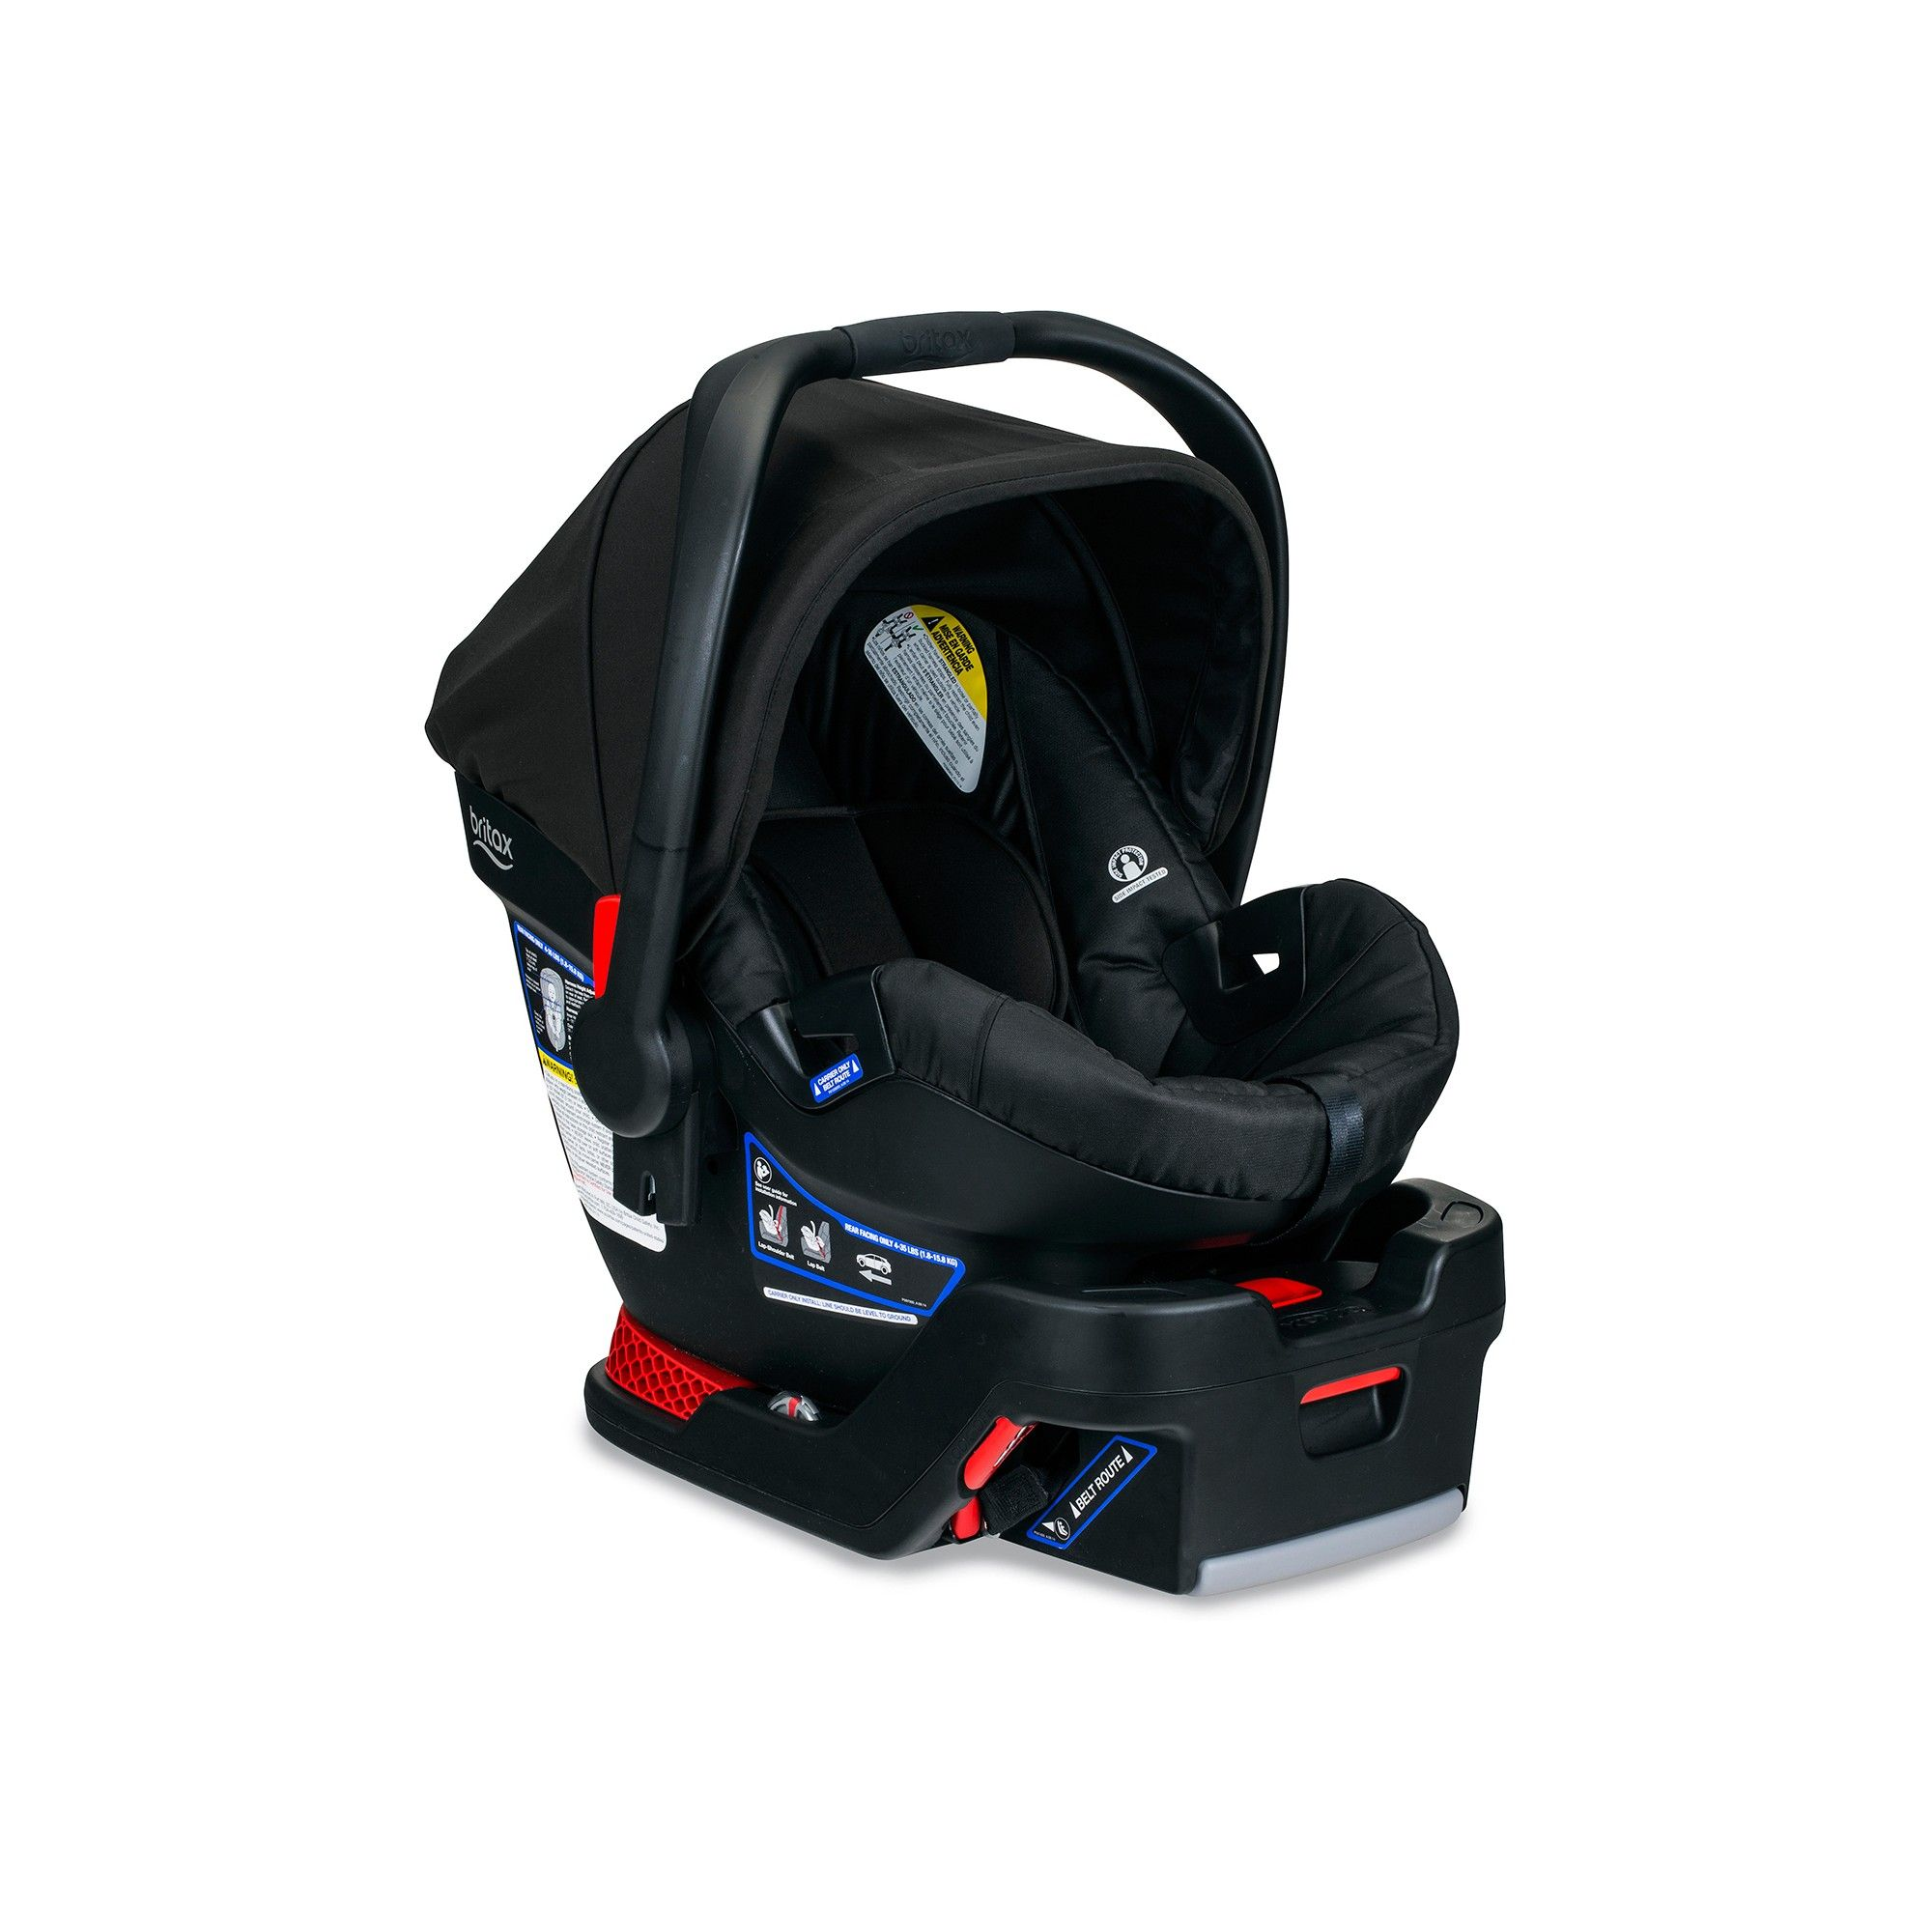 Britax BSafe 35 Infant Car Seat Raven Safest car seat